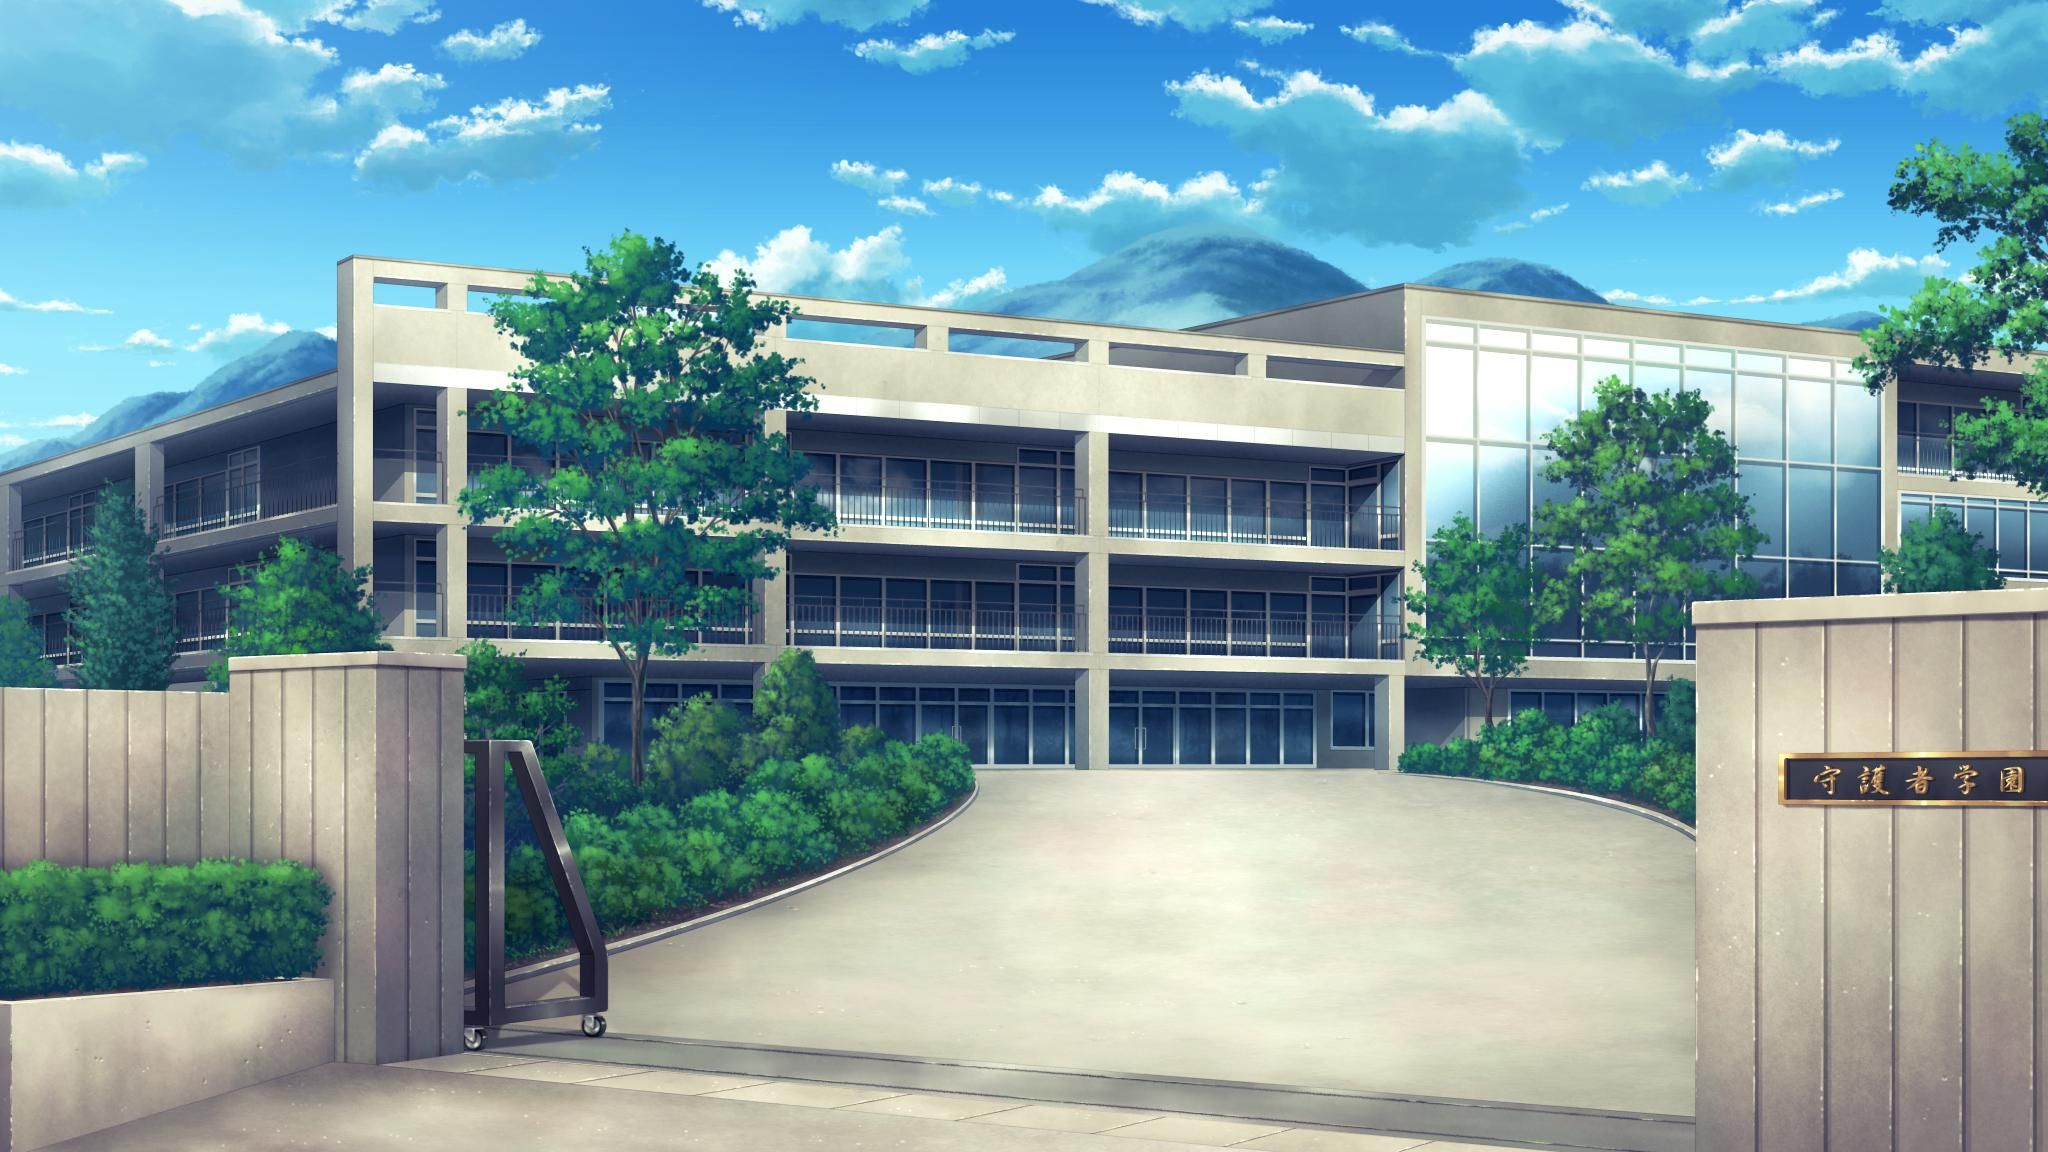 School Anime Scenery Background Wallpaper Anime scenery